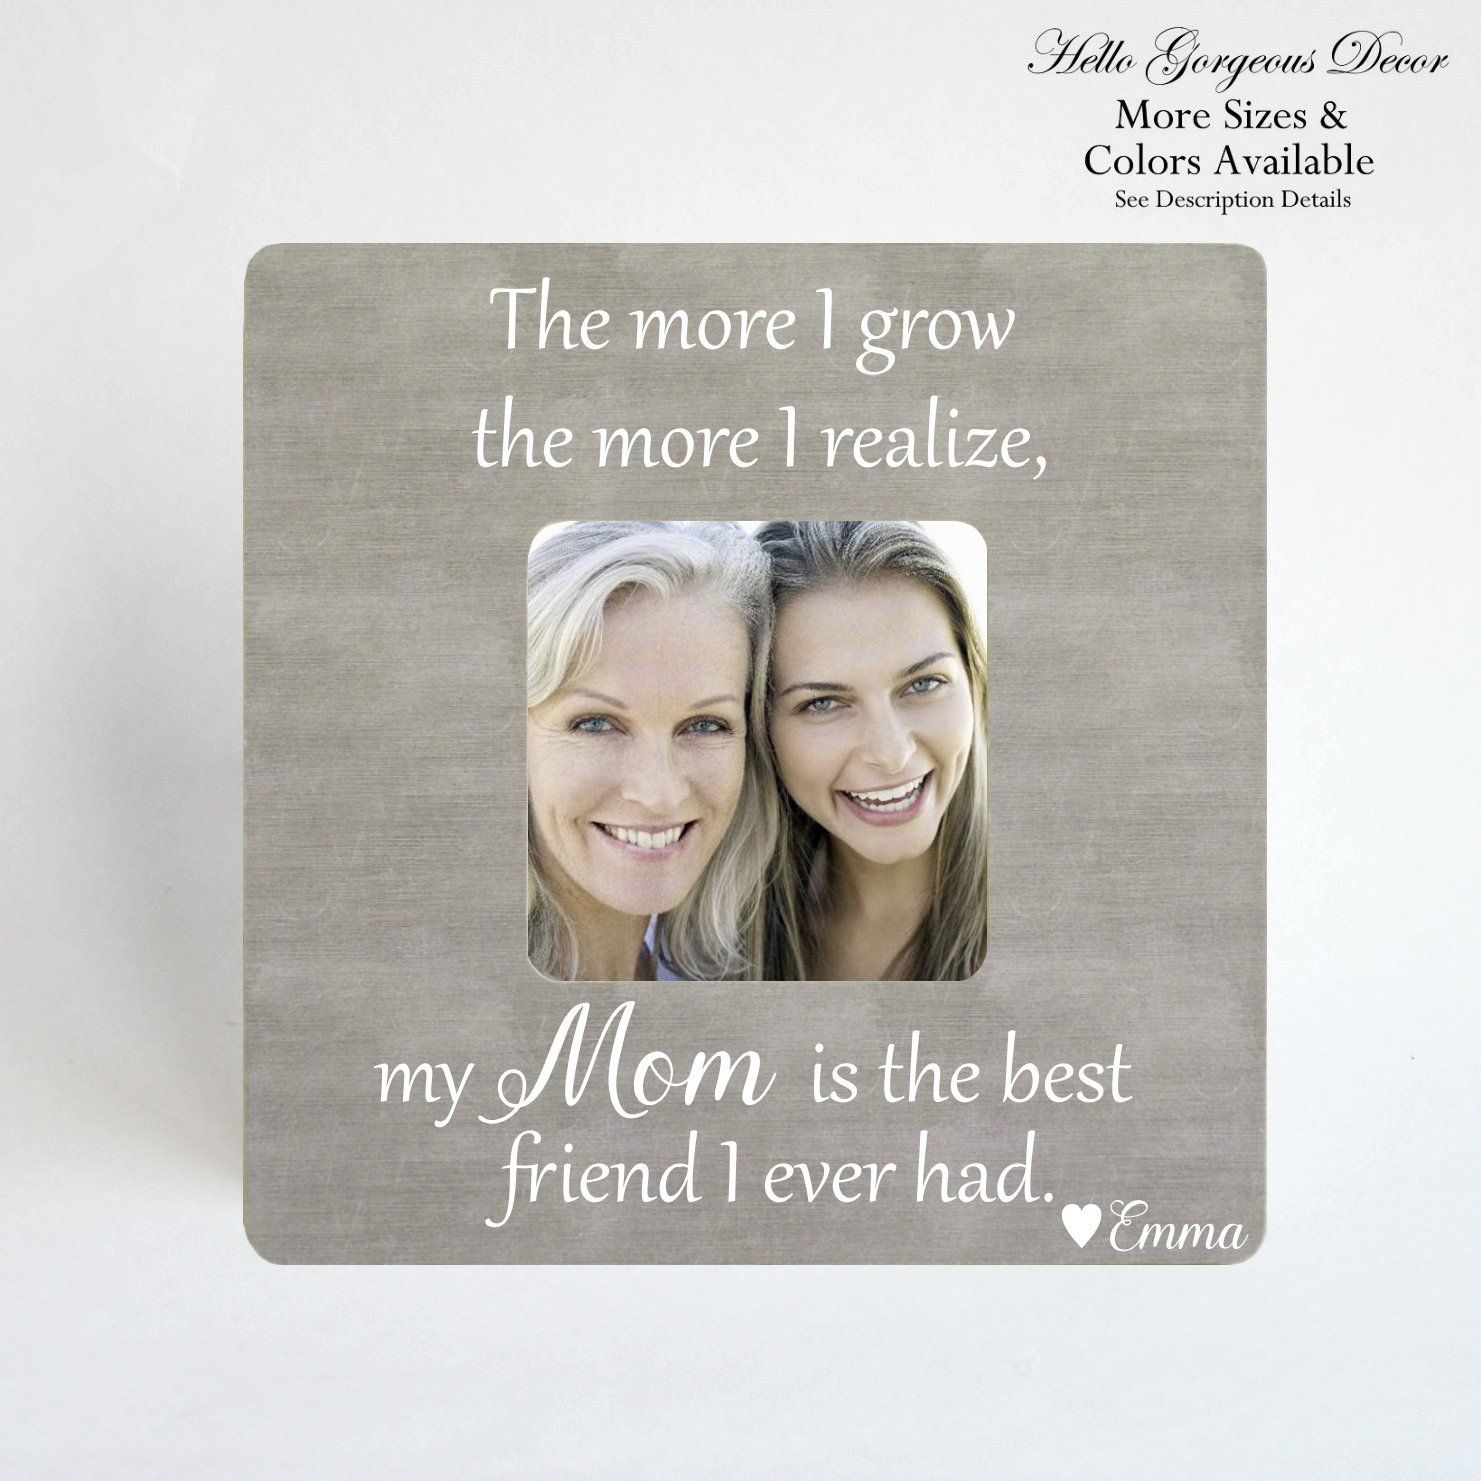 Mom Mother S Day Gift From Daughter Son Personalized Gift For Mom Gift For Mother Mother Daughter Mother Son Frame Mom Best Friend Personalized Gifts For Mom Mothers Day Gifts From